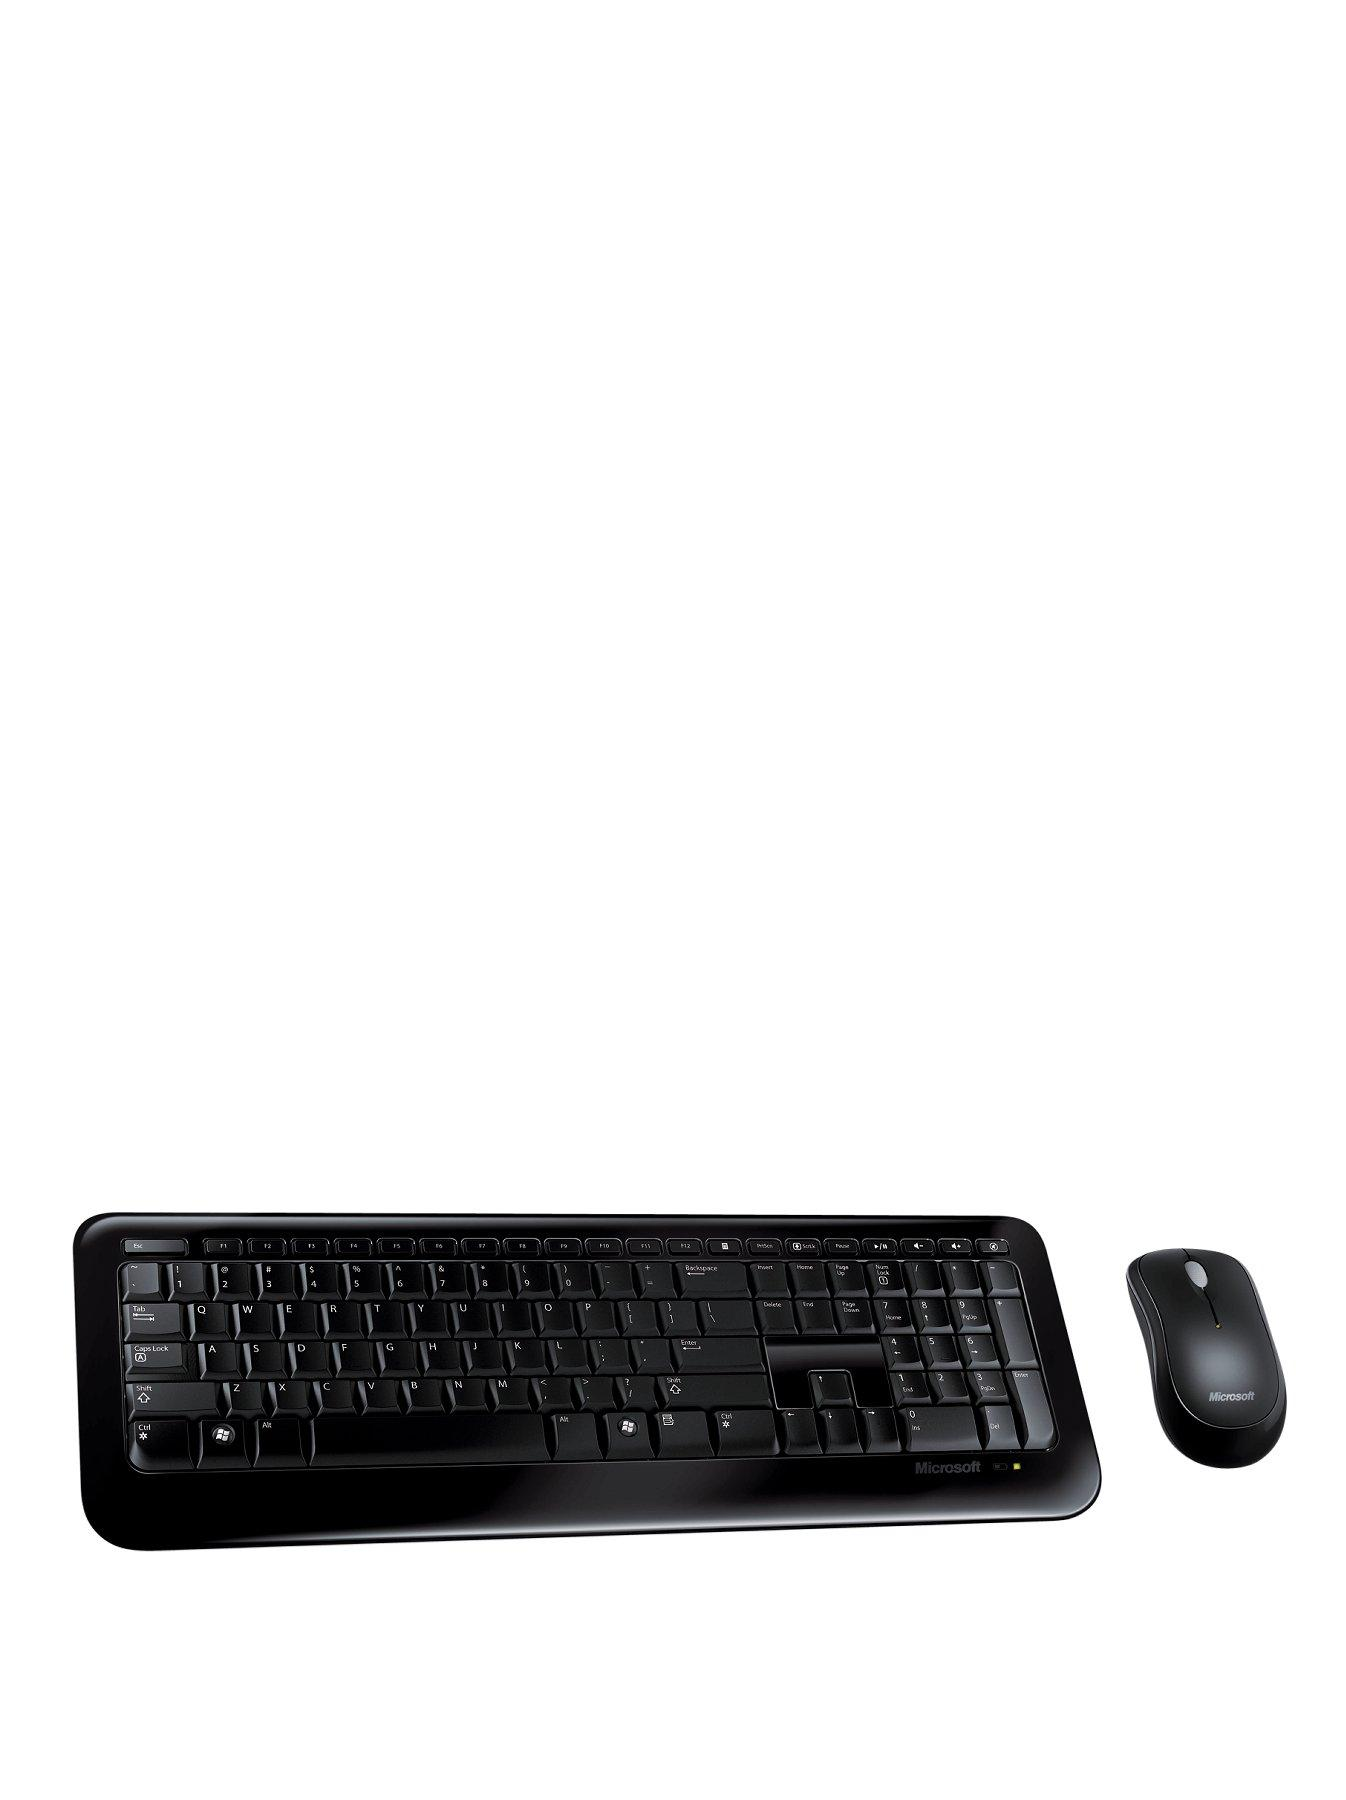 Desktop 800 Wireless Keyboard and Mouse Set